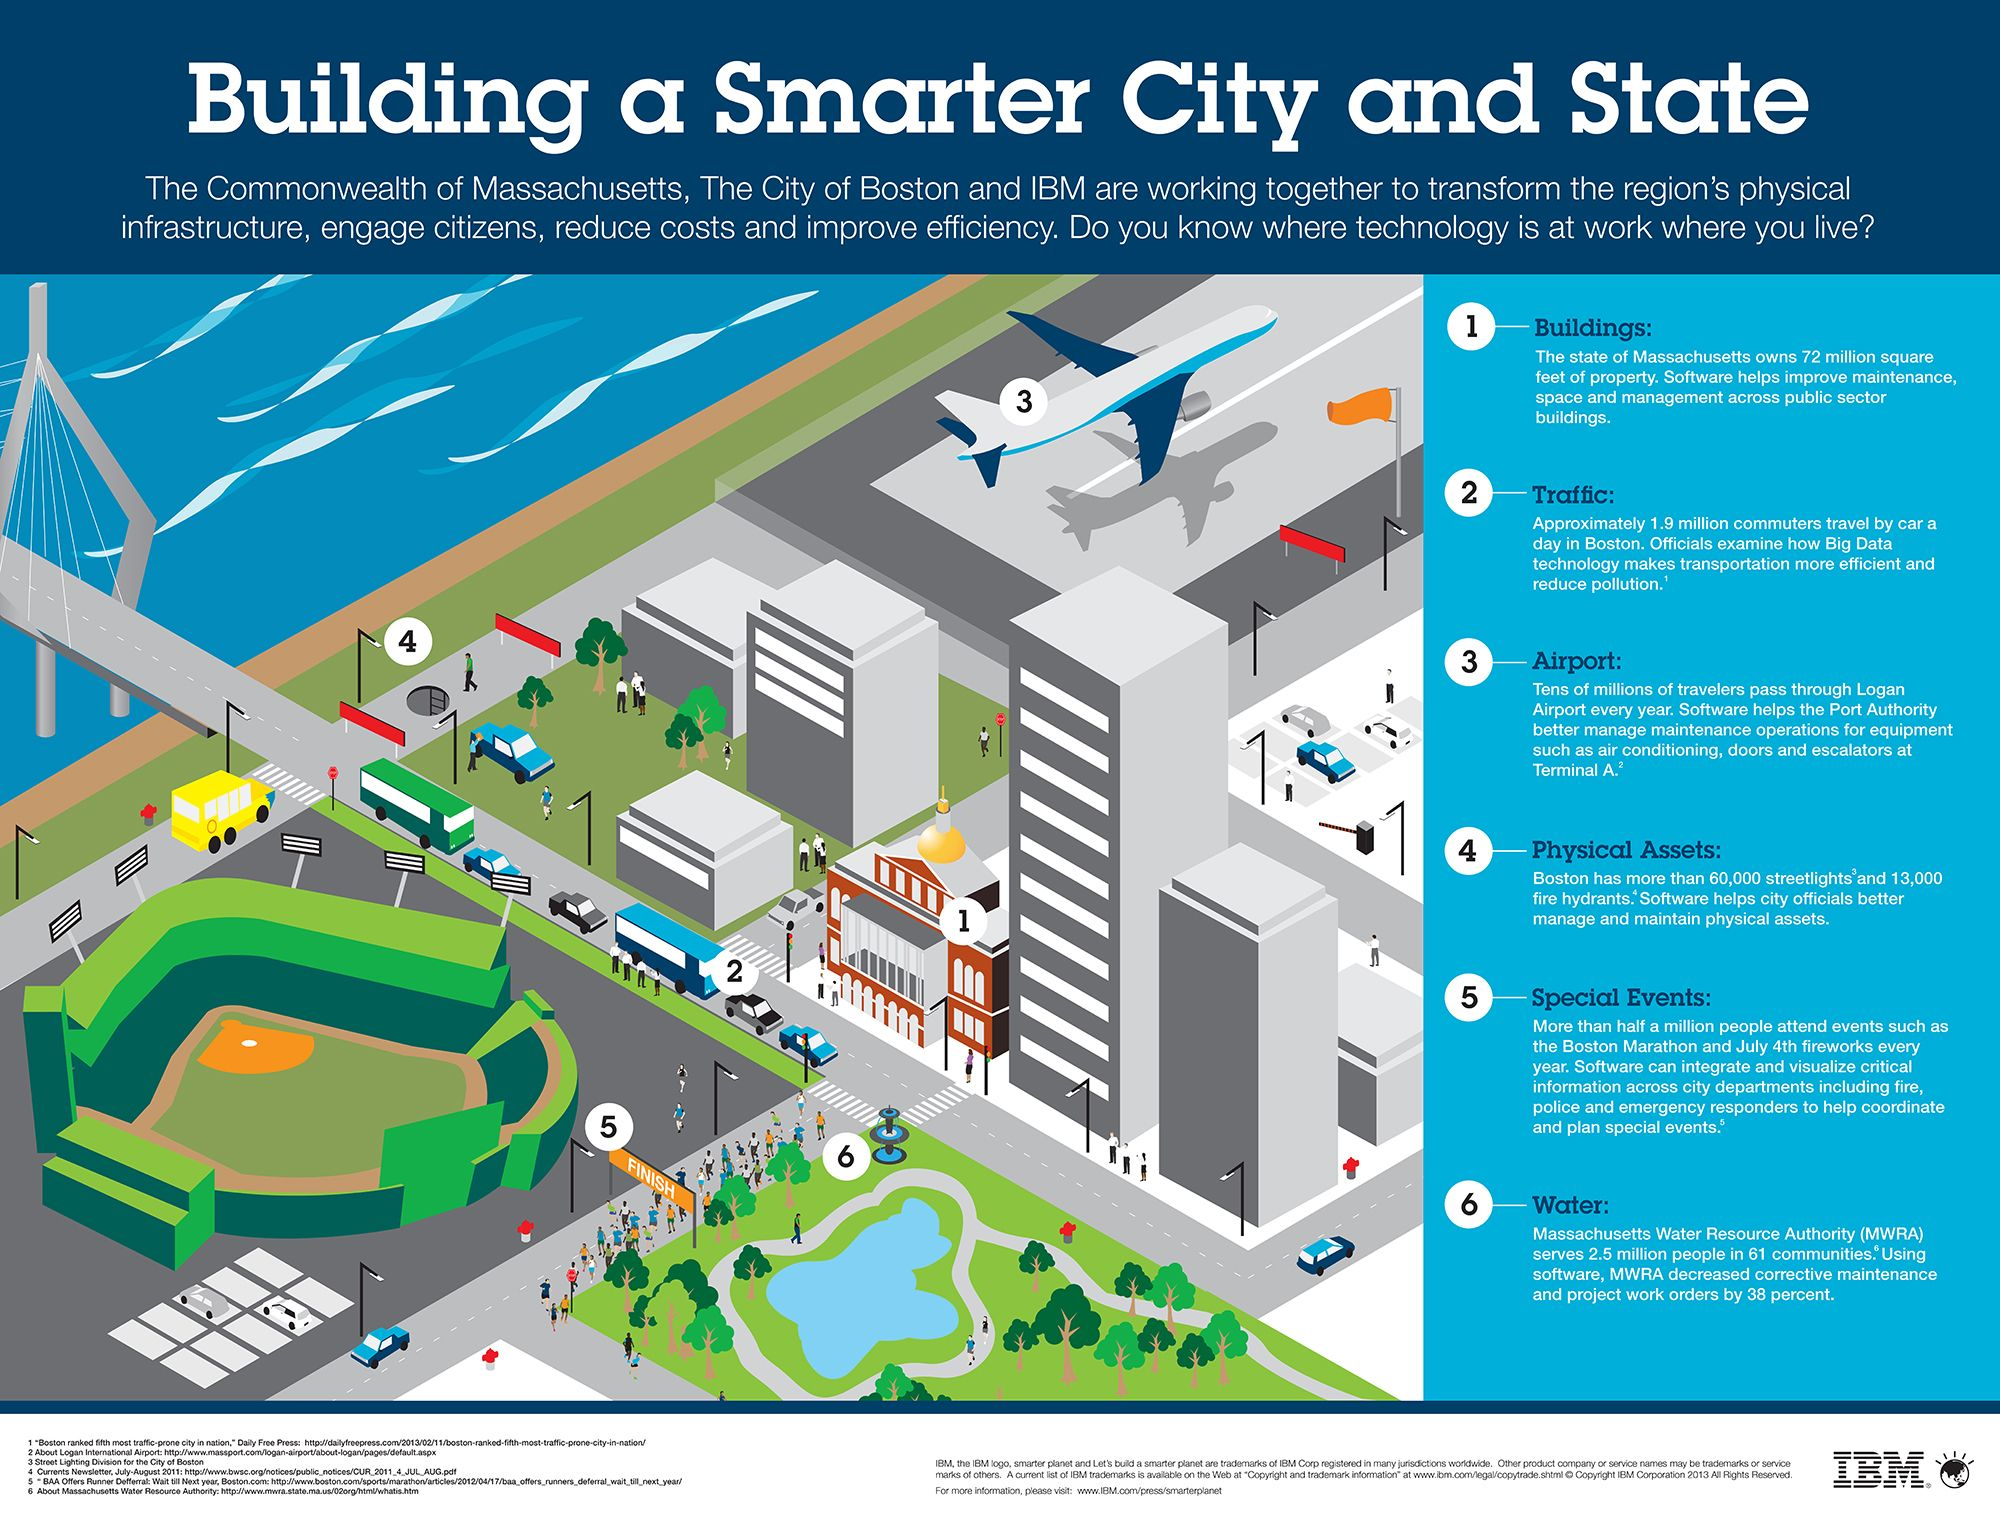 Global Shift To Smart Sustainable Cities Gains Momentum Smart City Smart Building Sustainable City